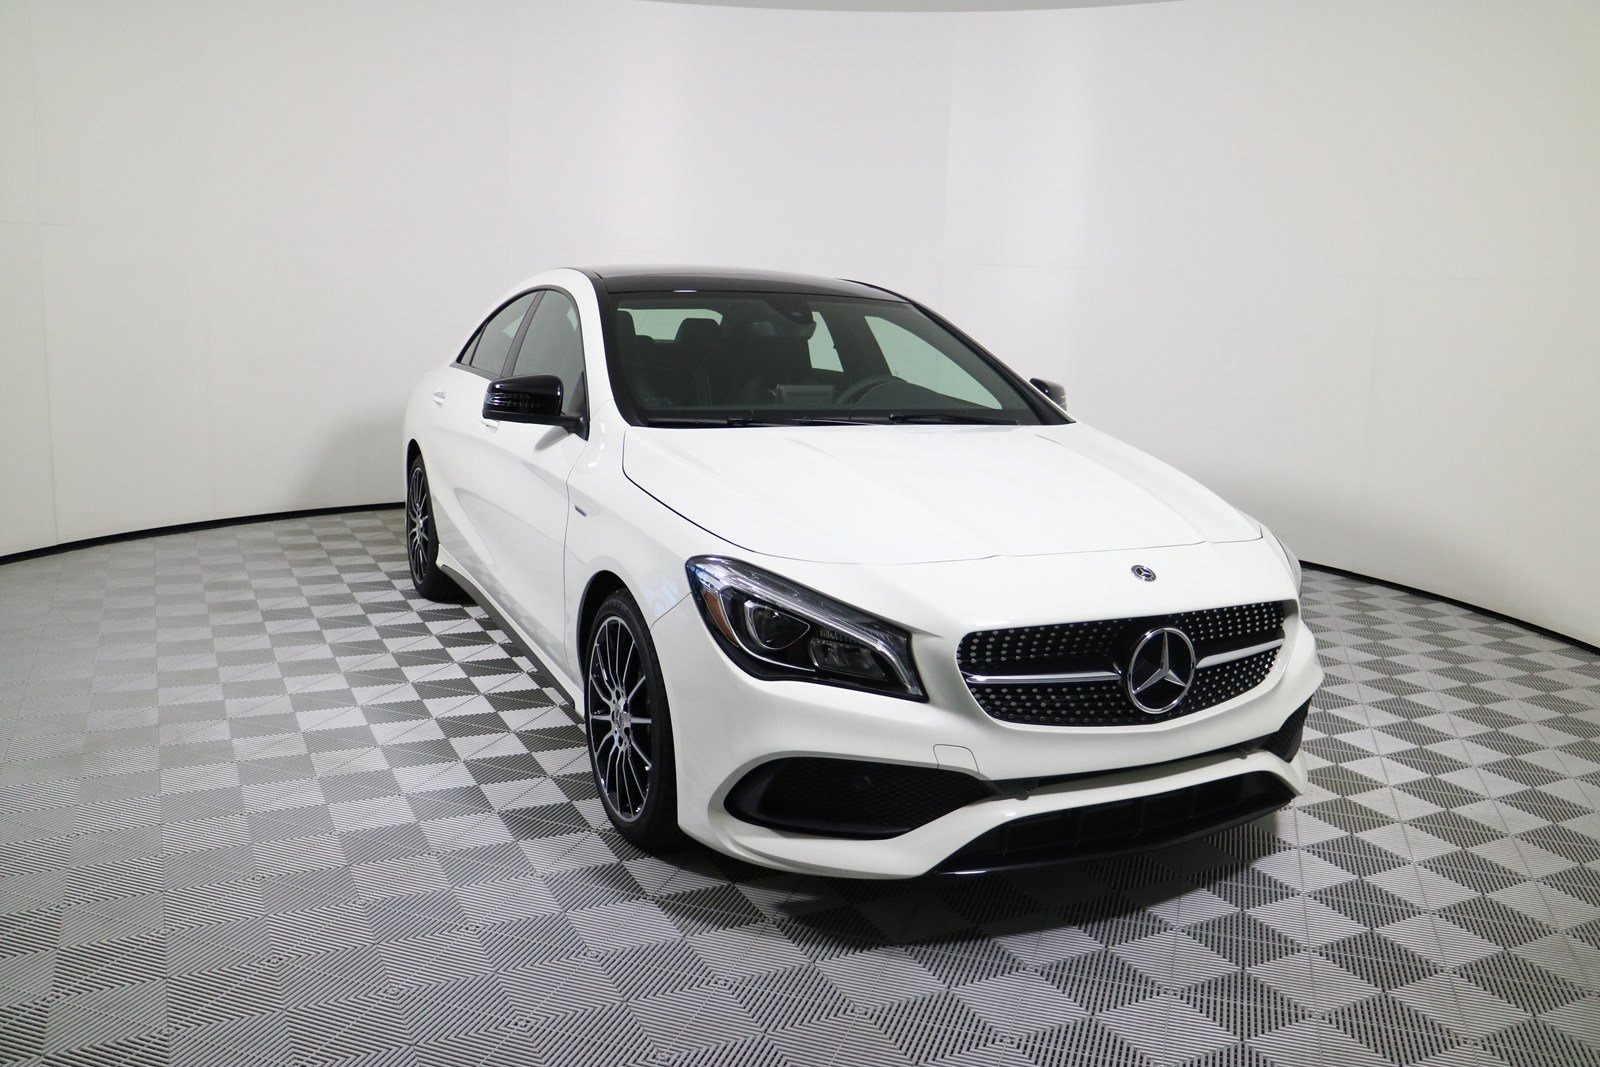 New 2018 MercedesBenz CLA CLA 250 Coupe in Parkersburg M5579